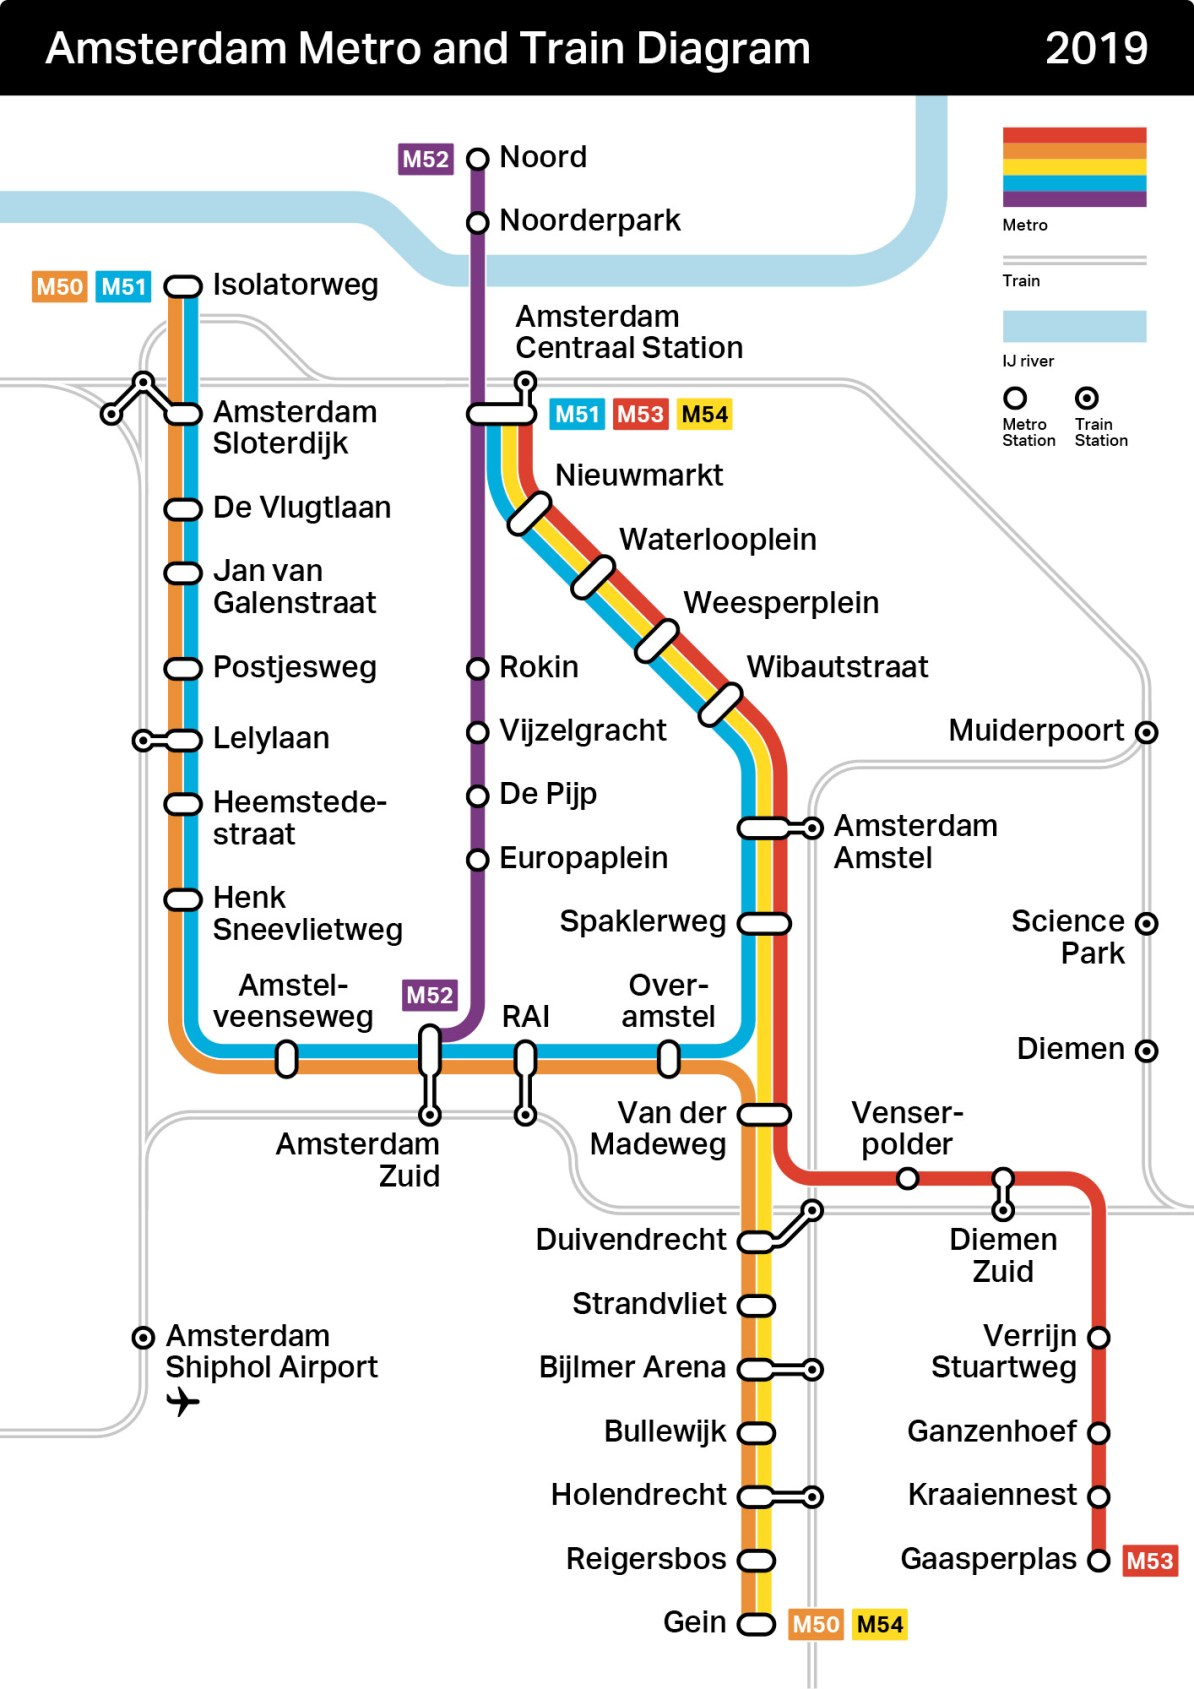 Amsterdam Subway Map.Transit Maps Unofficial Map Amsterdam Metro And Rail Map 2019 By